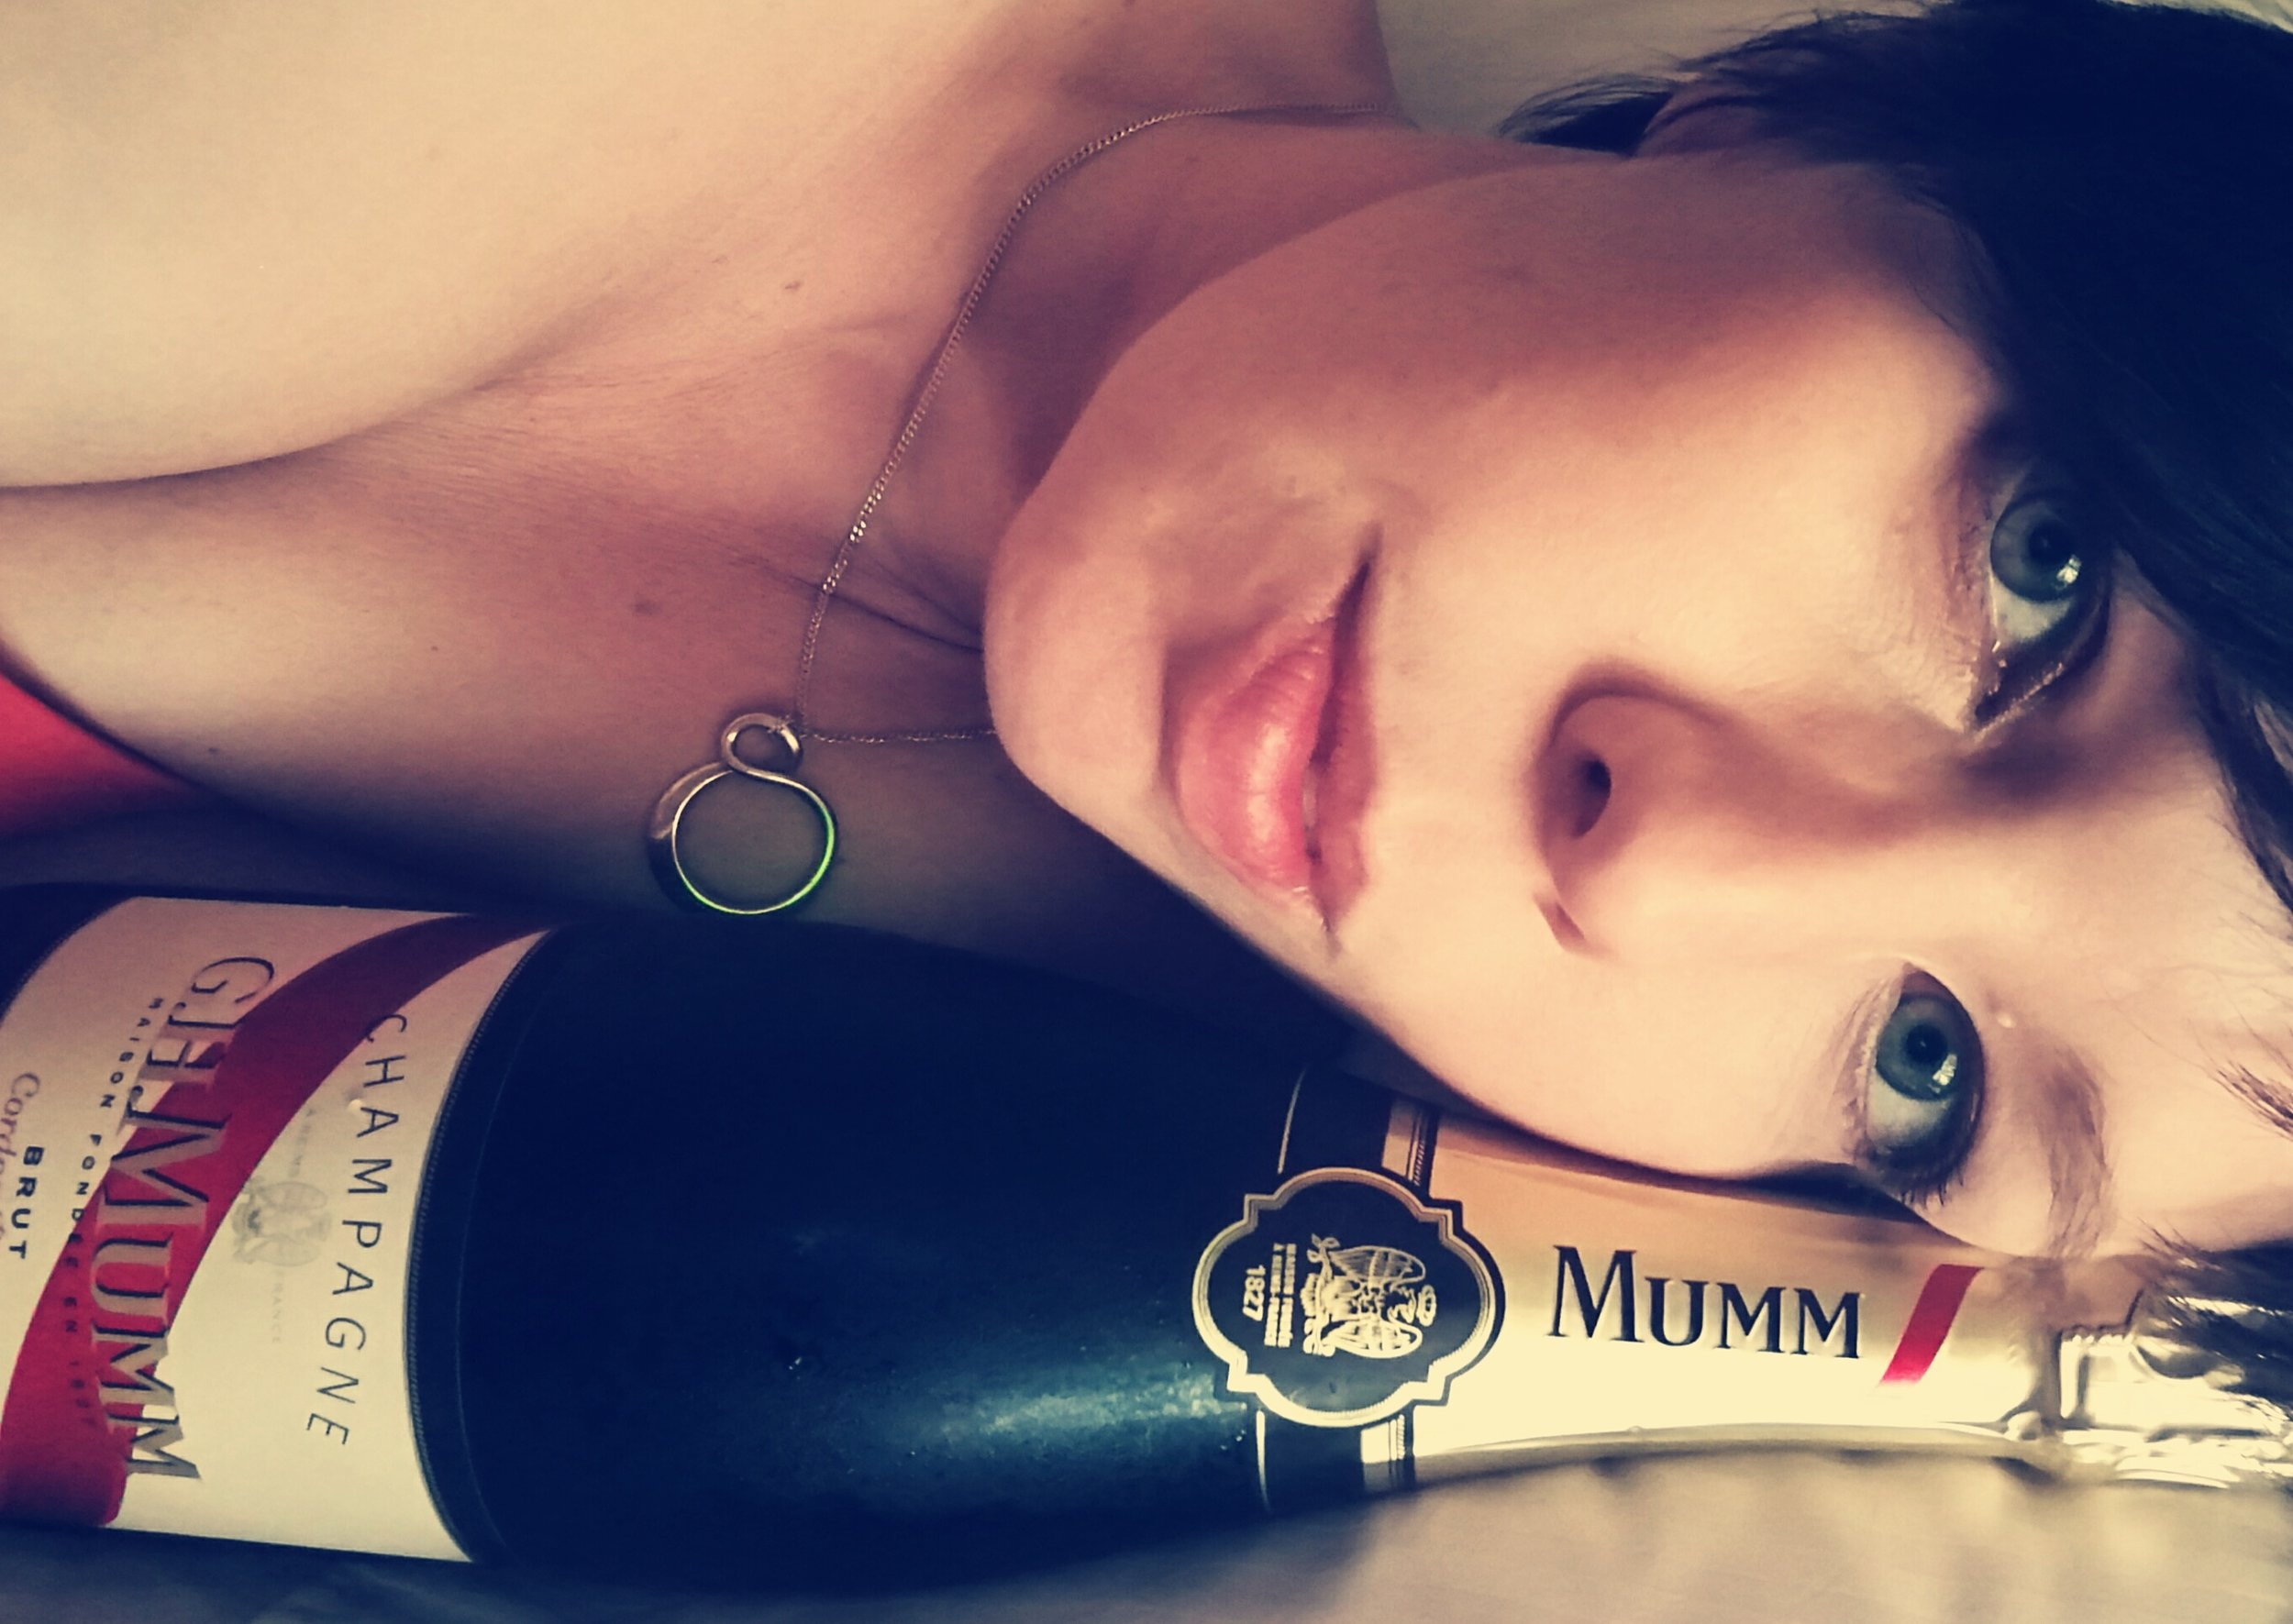 Oh Champagne used to be the third wheel in my sex life. I still love it but I don't pair it with sex anymore.